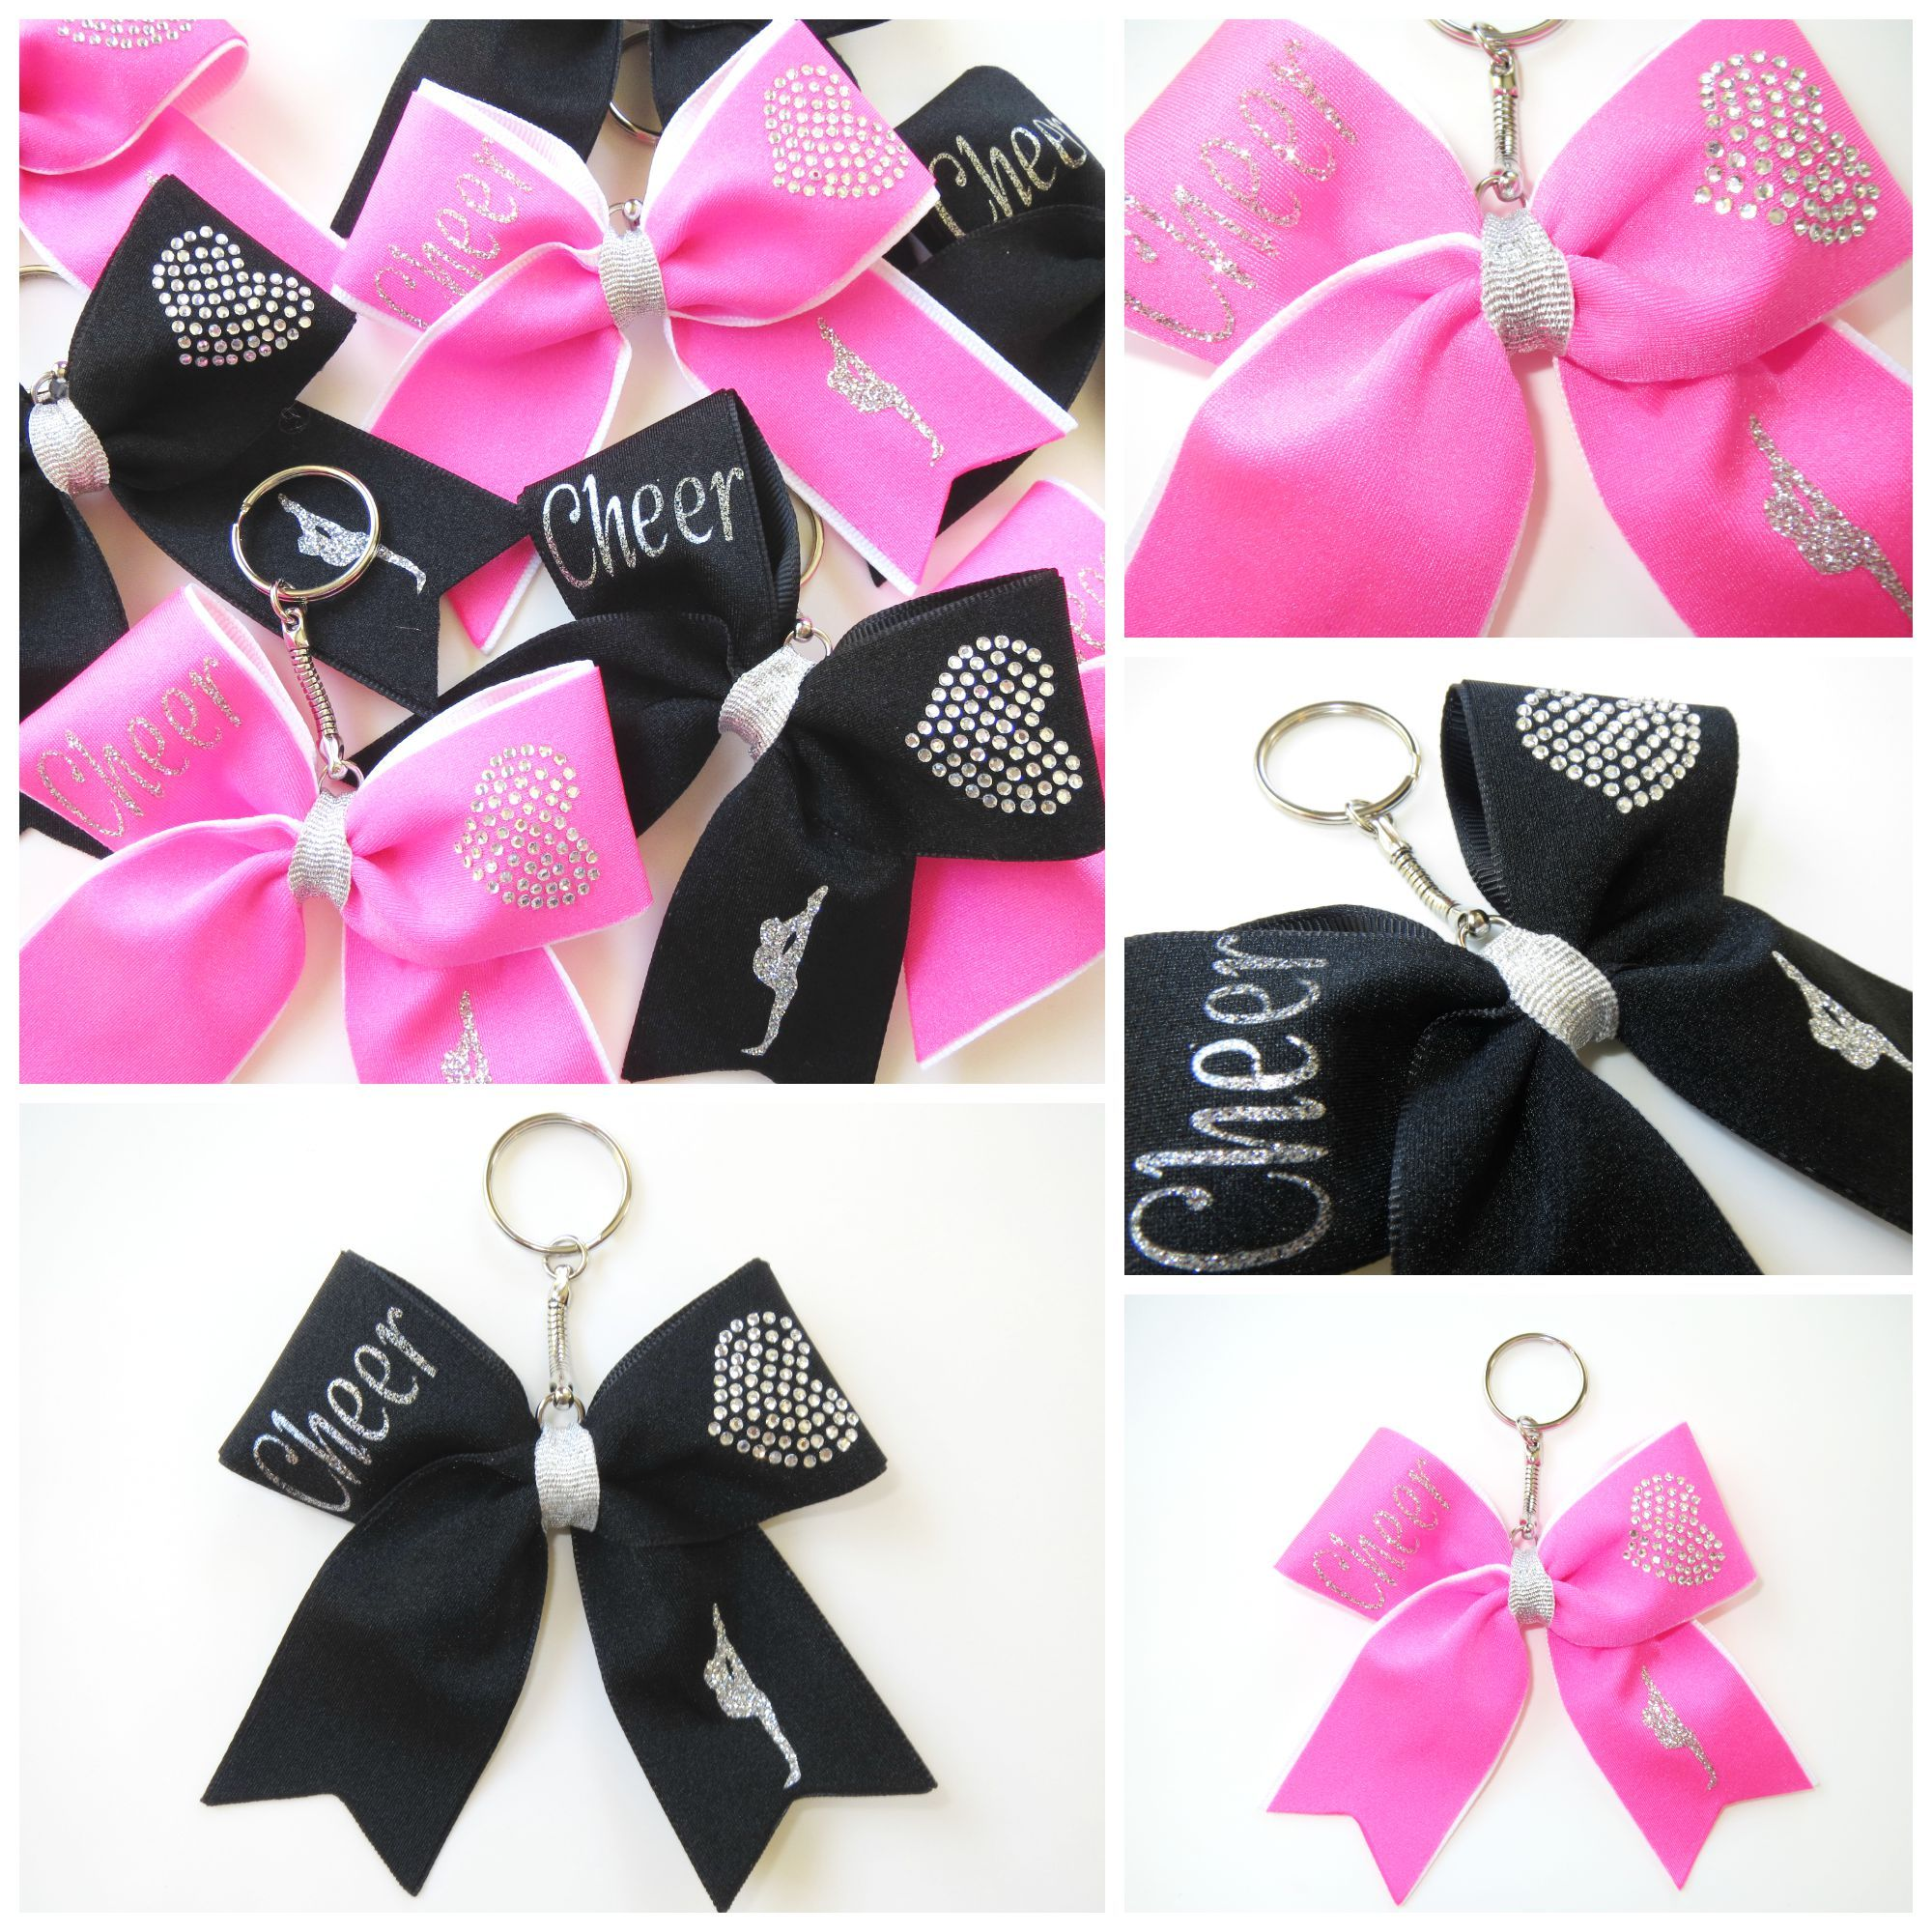 Bow Key Chains <3 <3 #cheer #pink #black #silver #rhinestones #bling ...